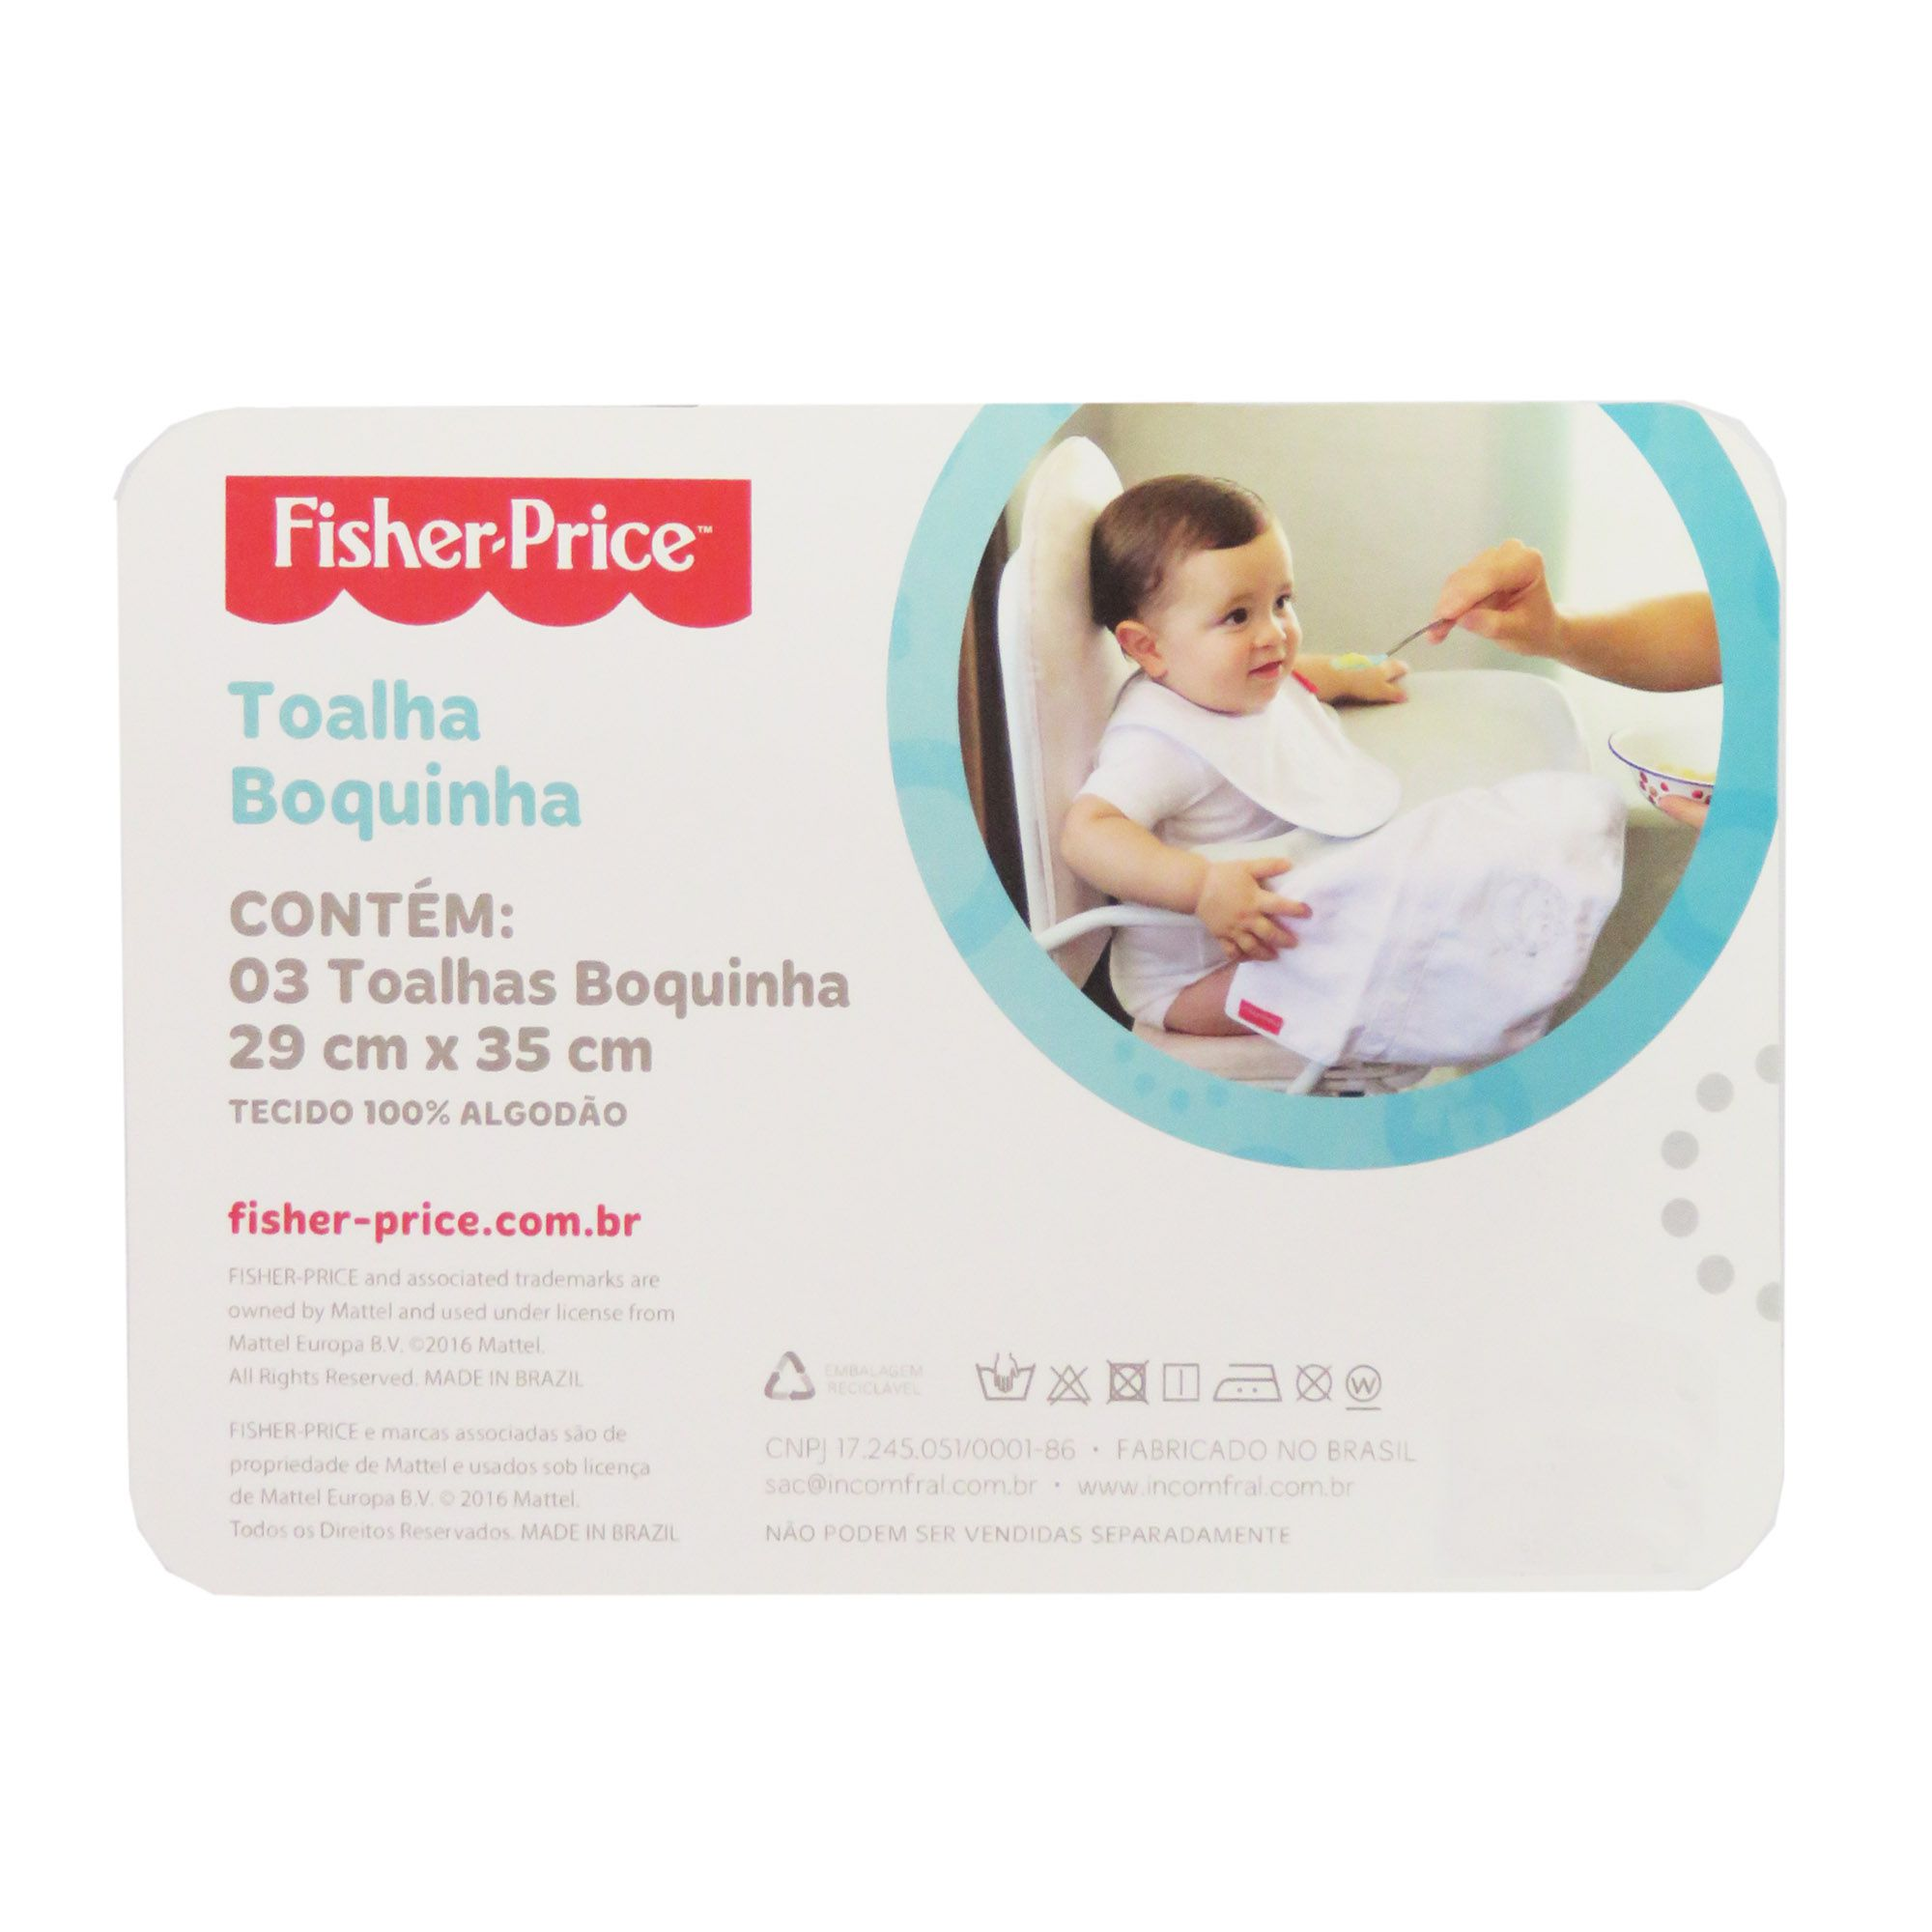 Toalha Boquinha Incomfral Fisher-Price